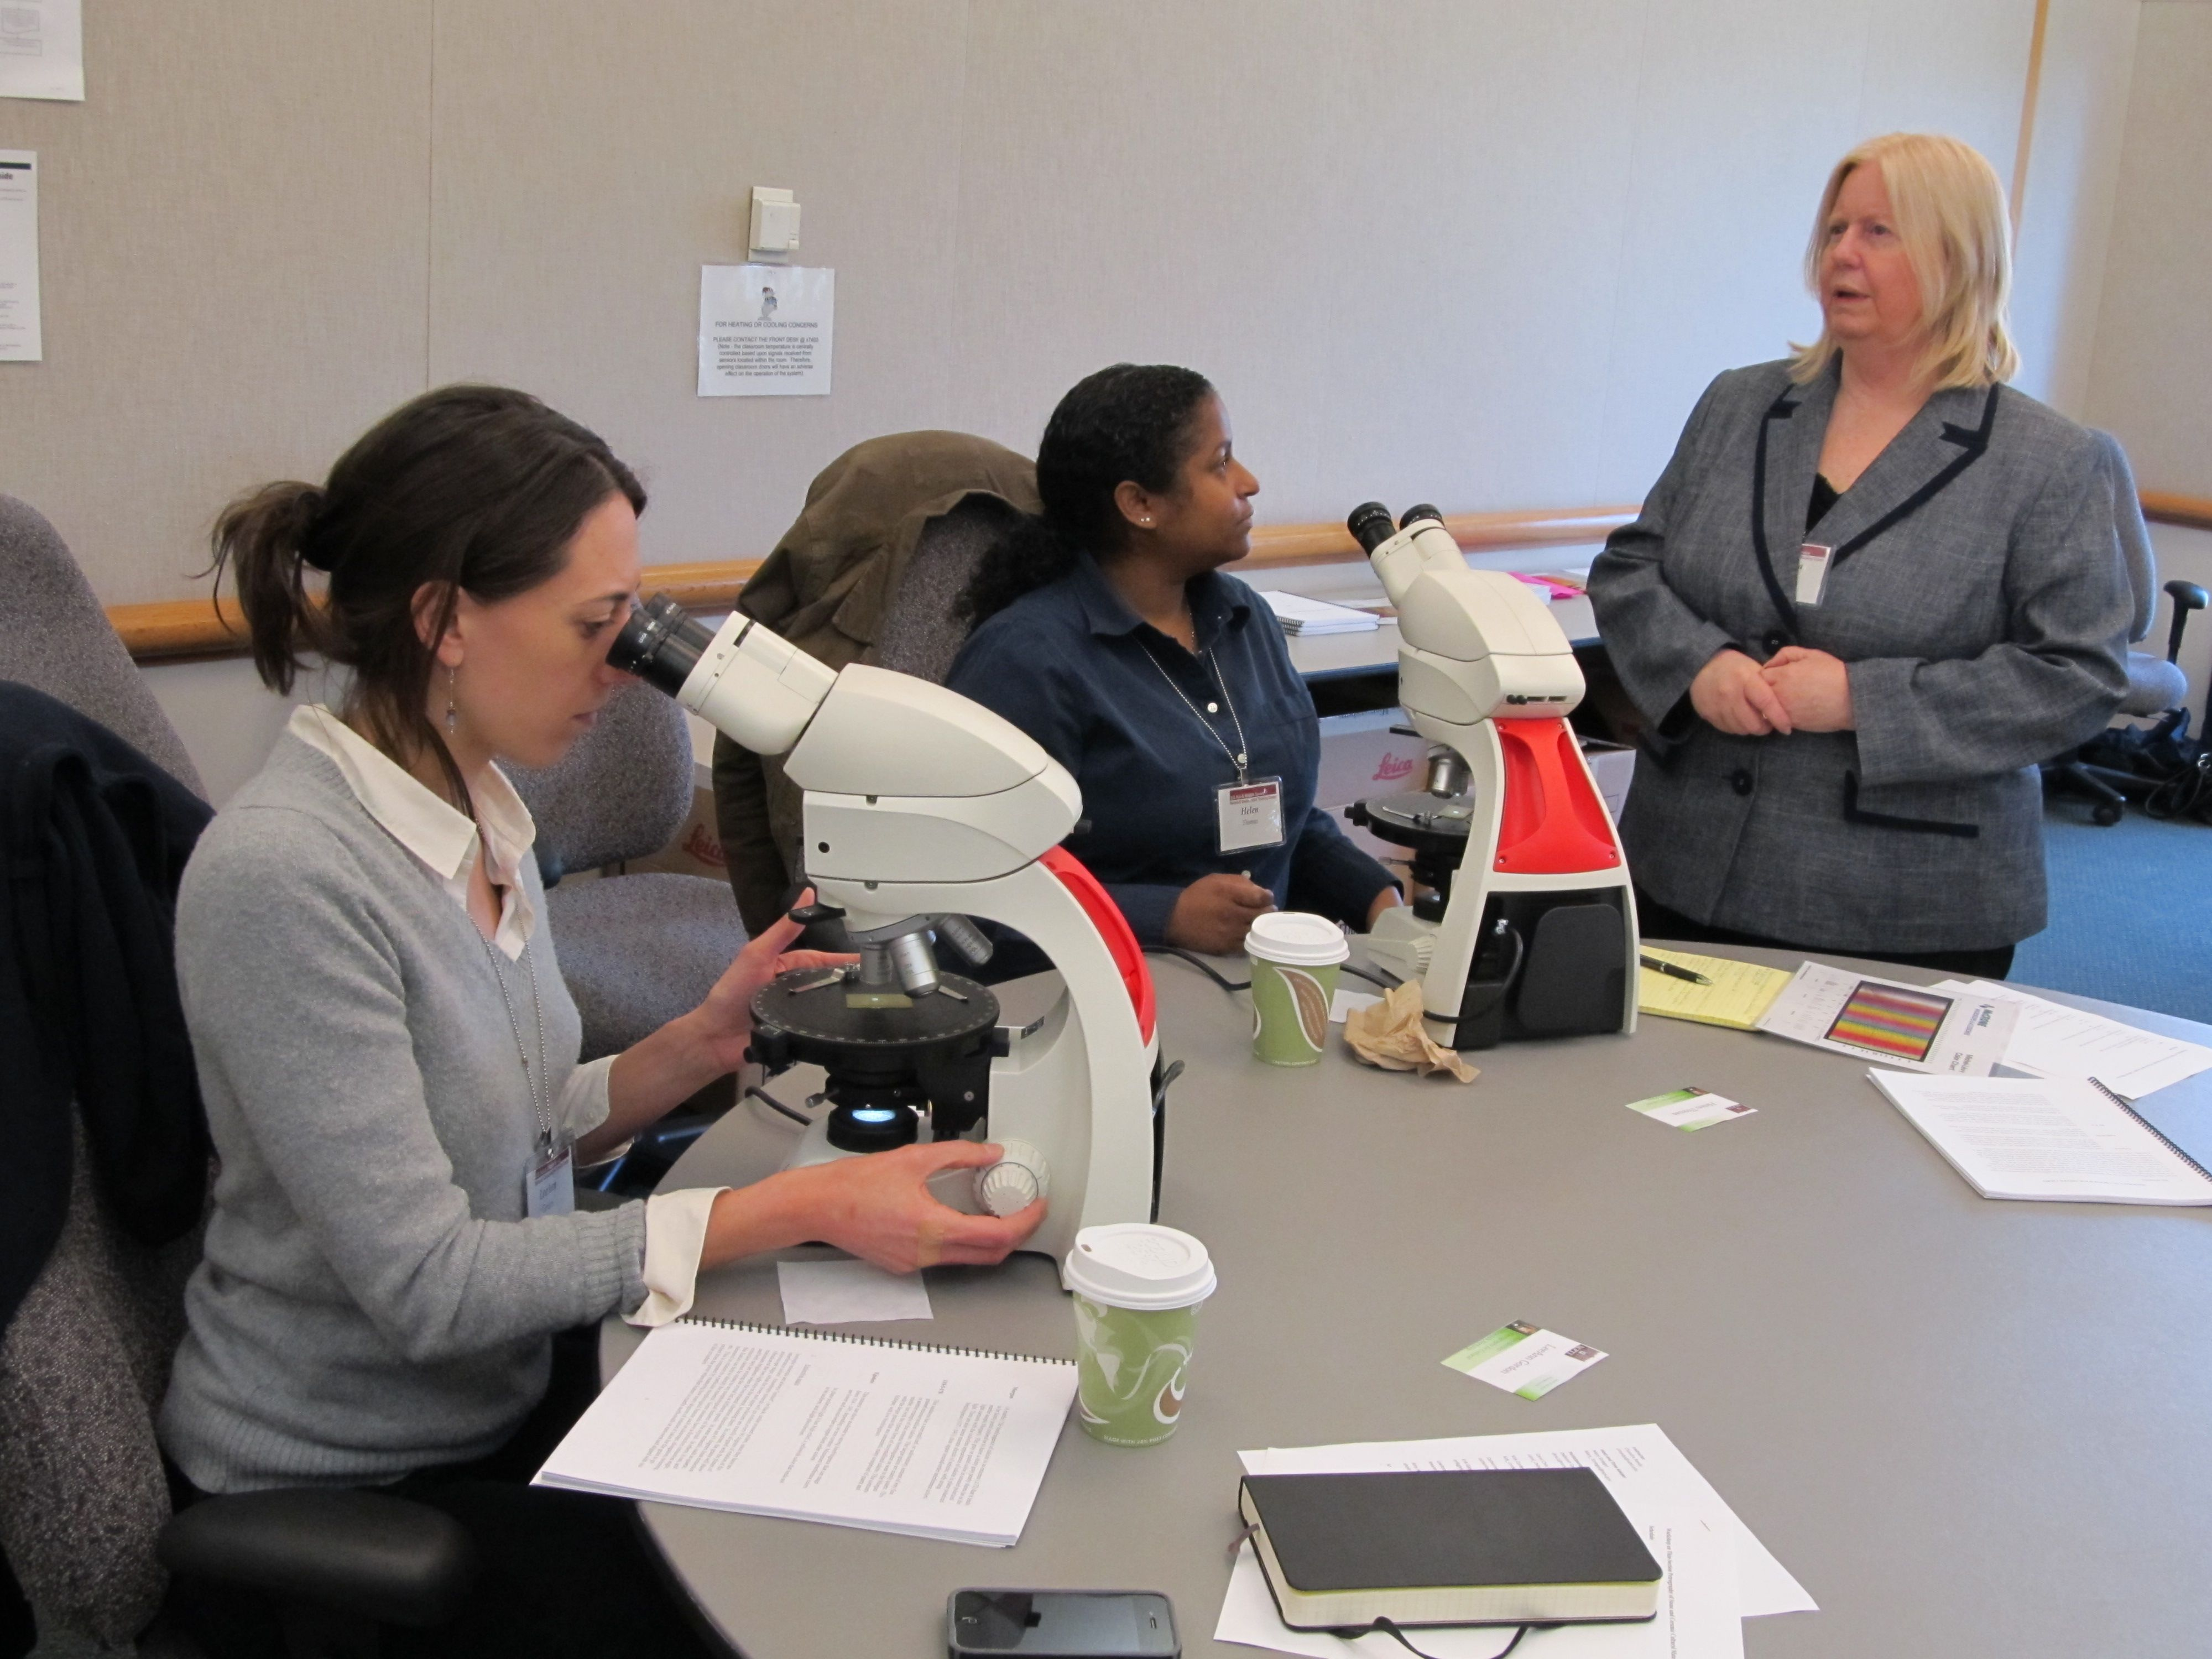 Chandra Reedy helps students during the 2012 Petrography for Conservation class